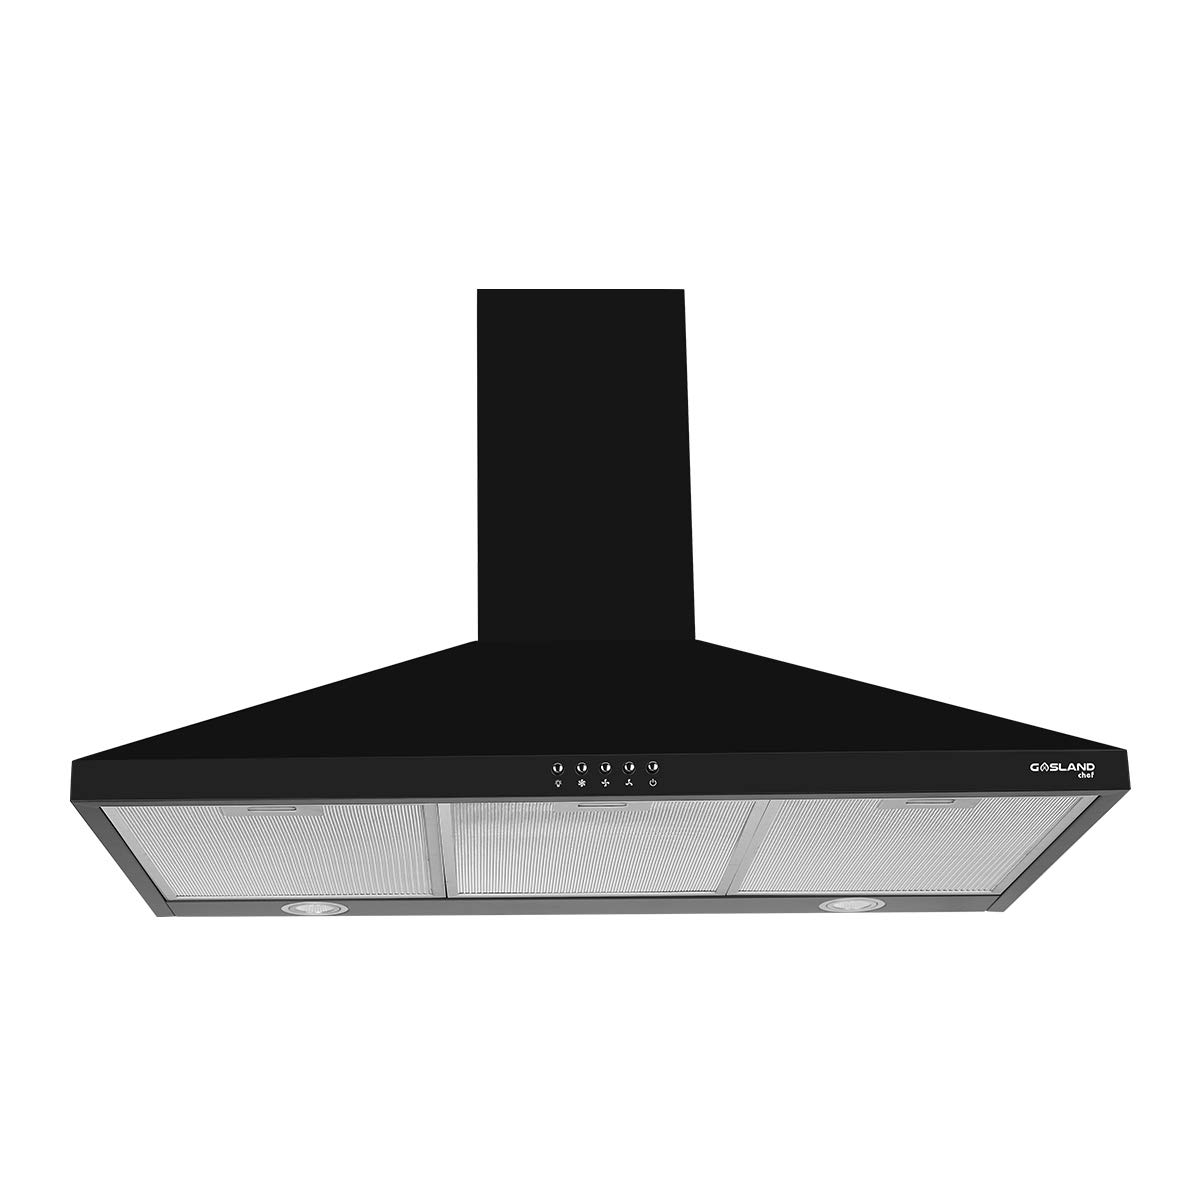 GASLAND Chef Black 30-inch Wall Mount Kitchen Hood, 3-Speed 450-CFM Push Button Control Ducted Exhaust Hood Fan, Convertible Chimney-style, Dual LED Lights, Aluminum Mesh Filter